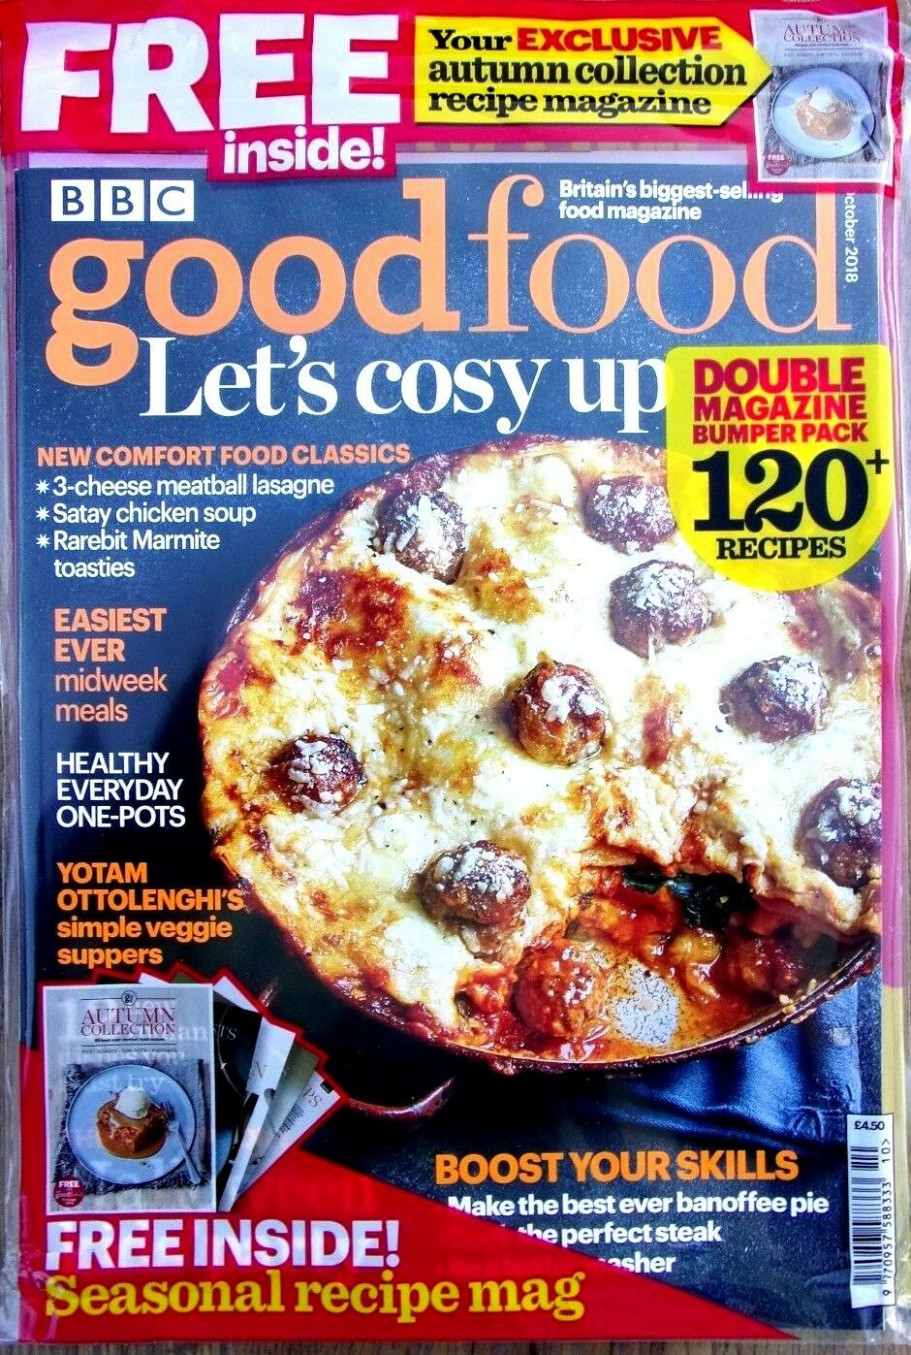 Details about BBC GOOD FOOD MAGAZINE OCTOBER 14 WITH FREE AUTUMN  COLLECTION RECIPE MAG ~ NEW - food recipes magazine